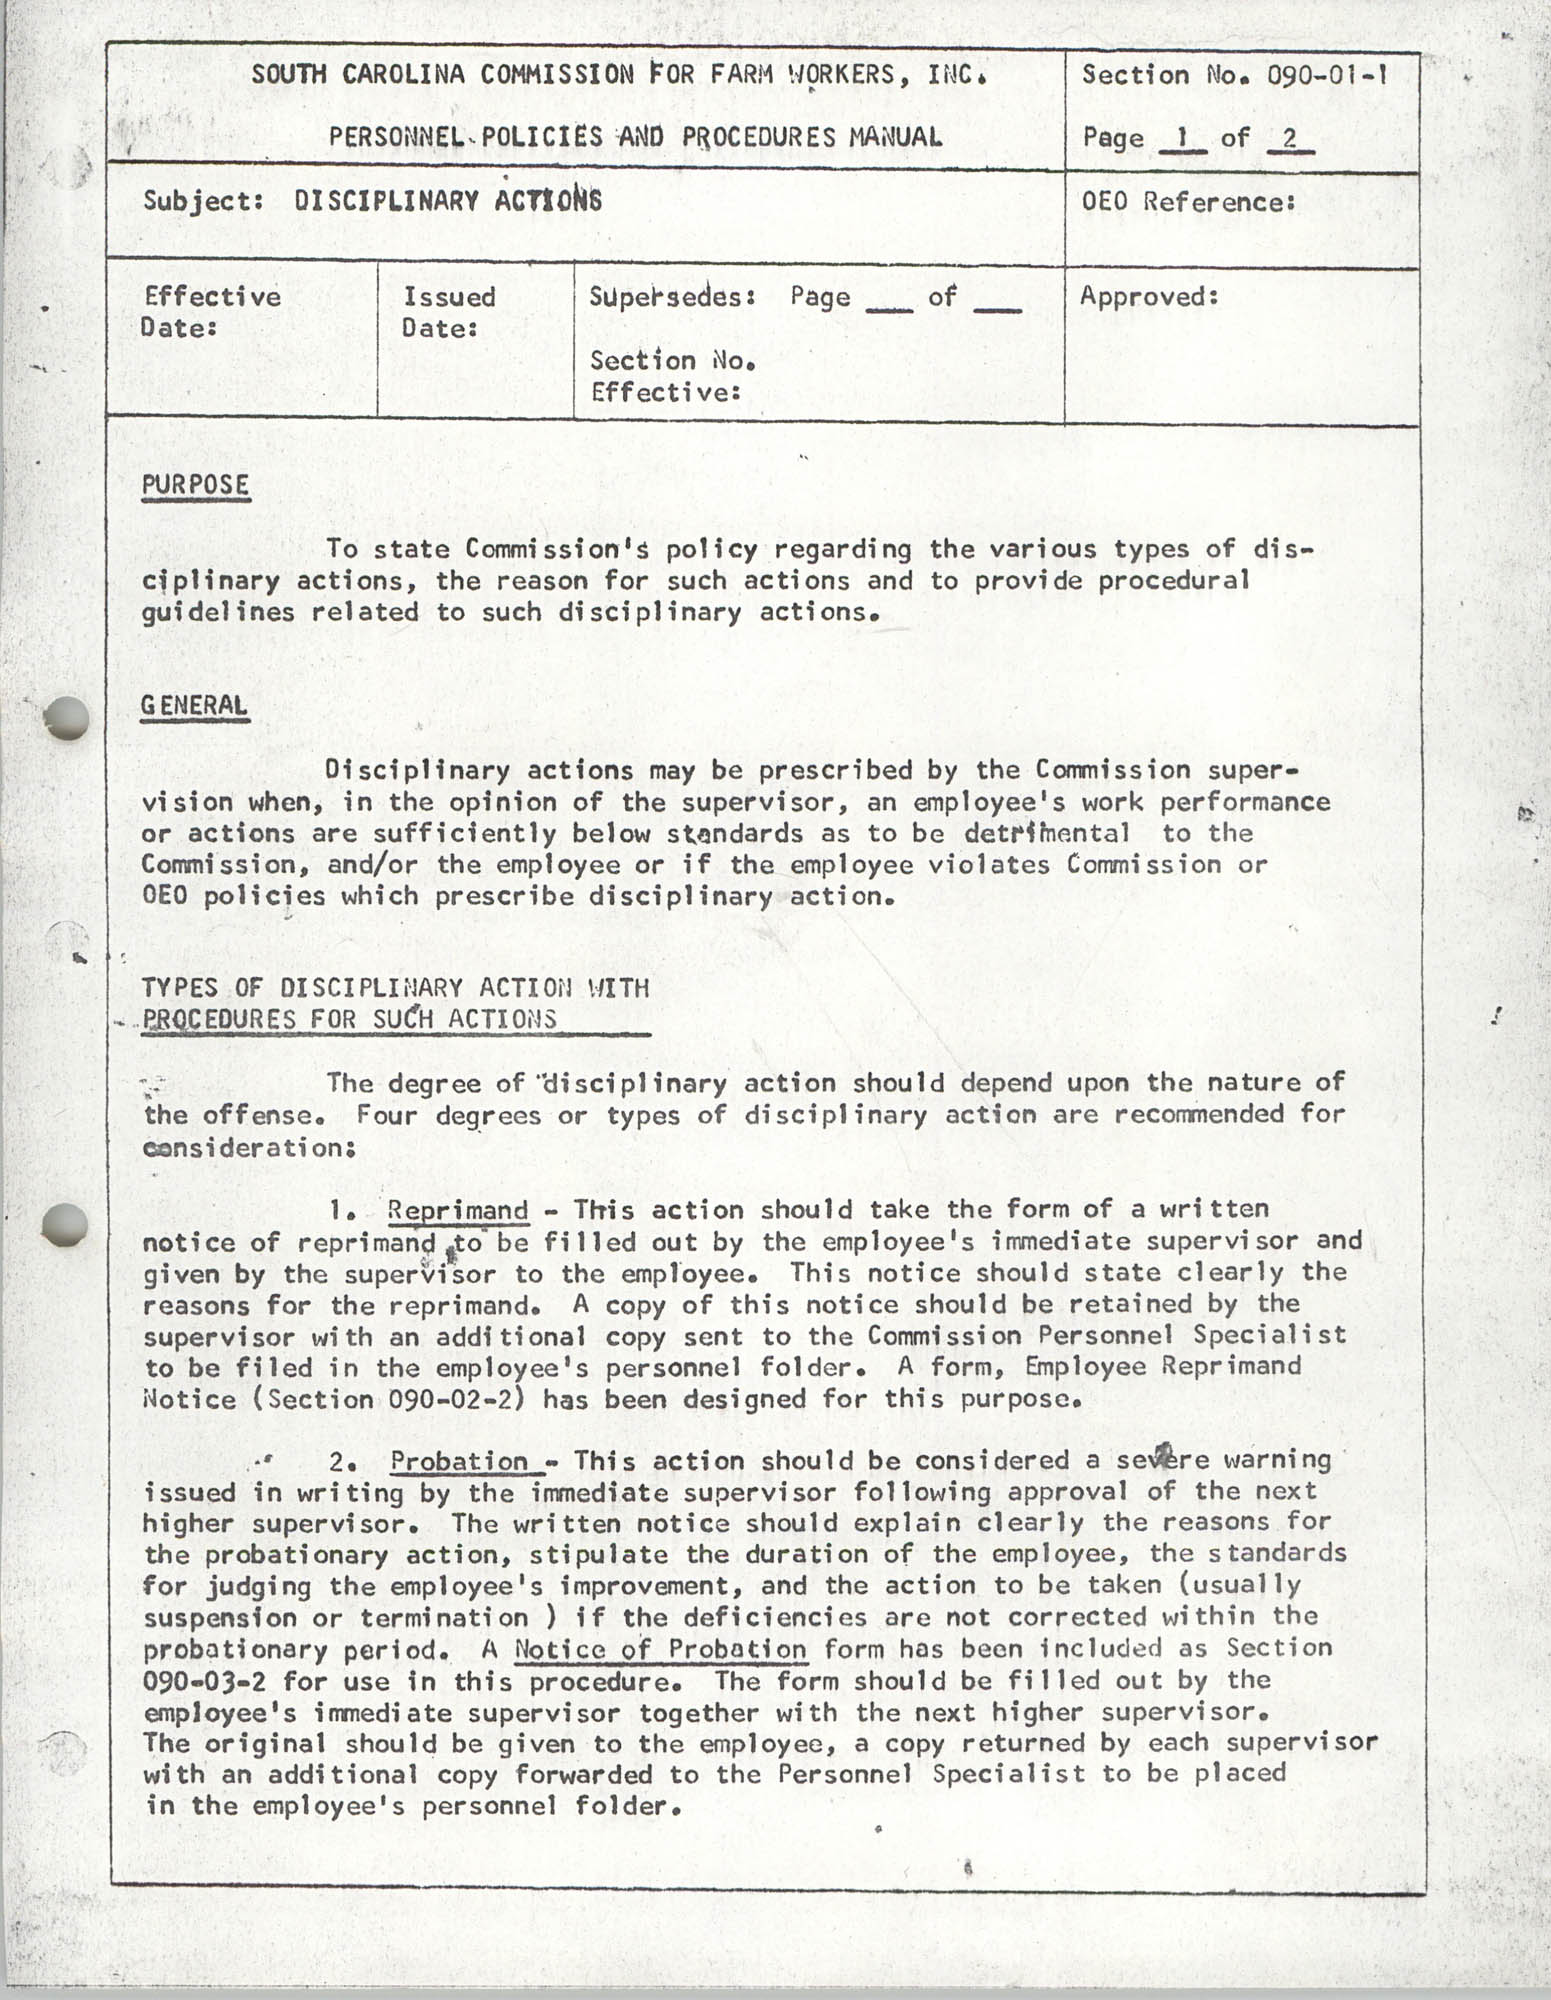 Personnel Policies and Procedures Manual, Section No. 090-01-1, Page 1